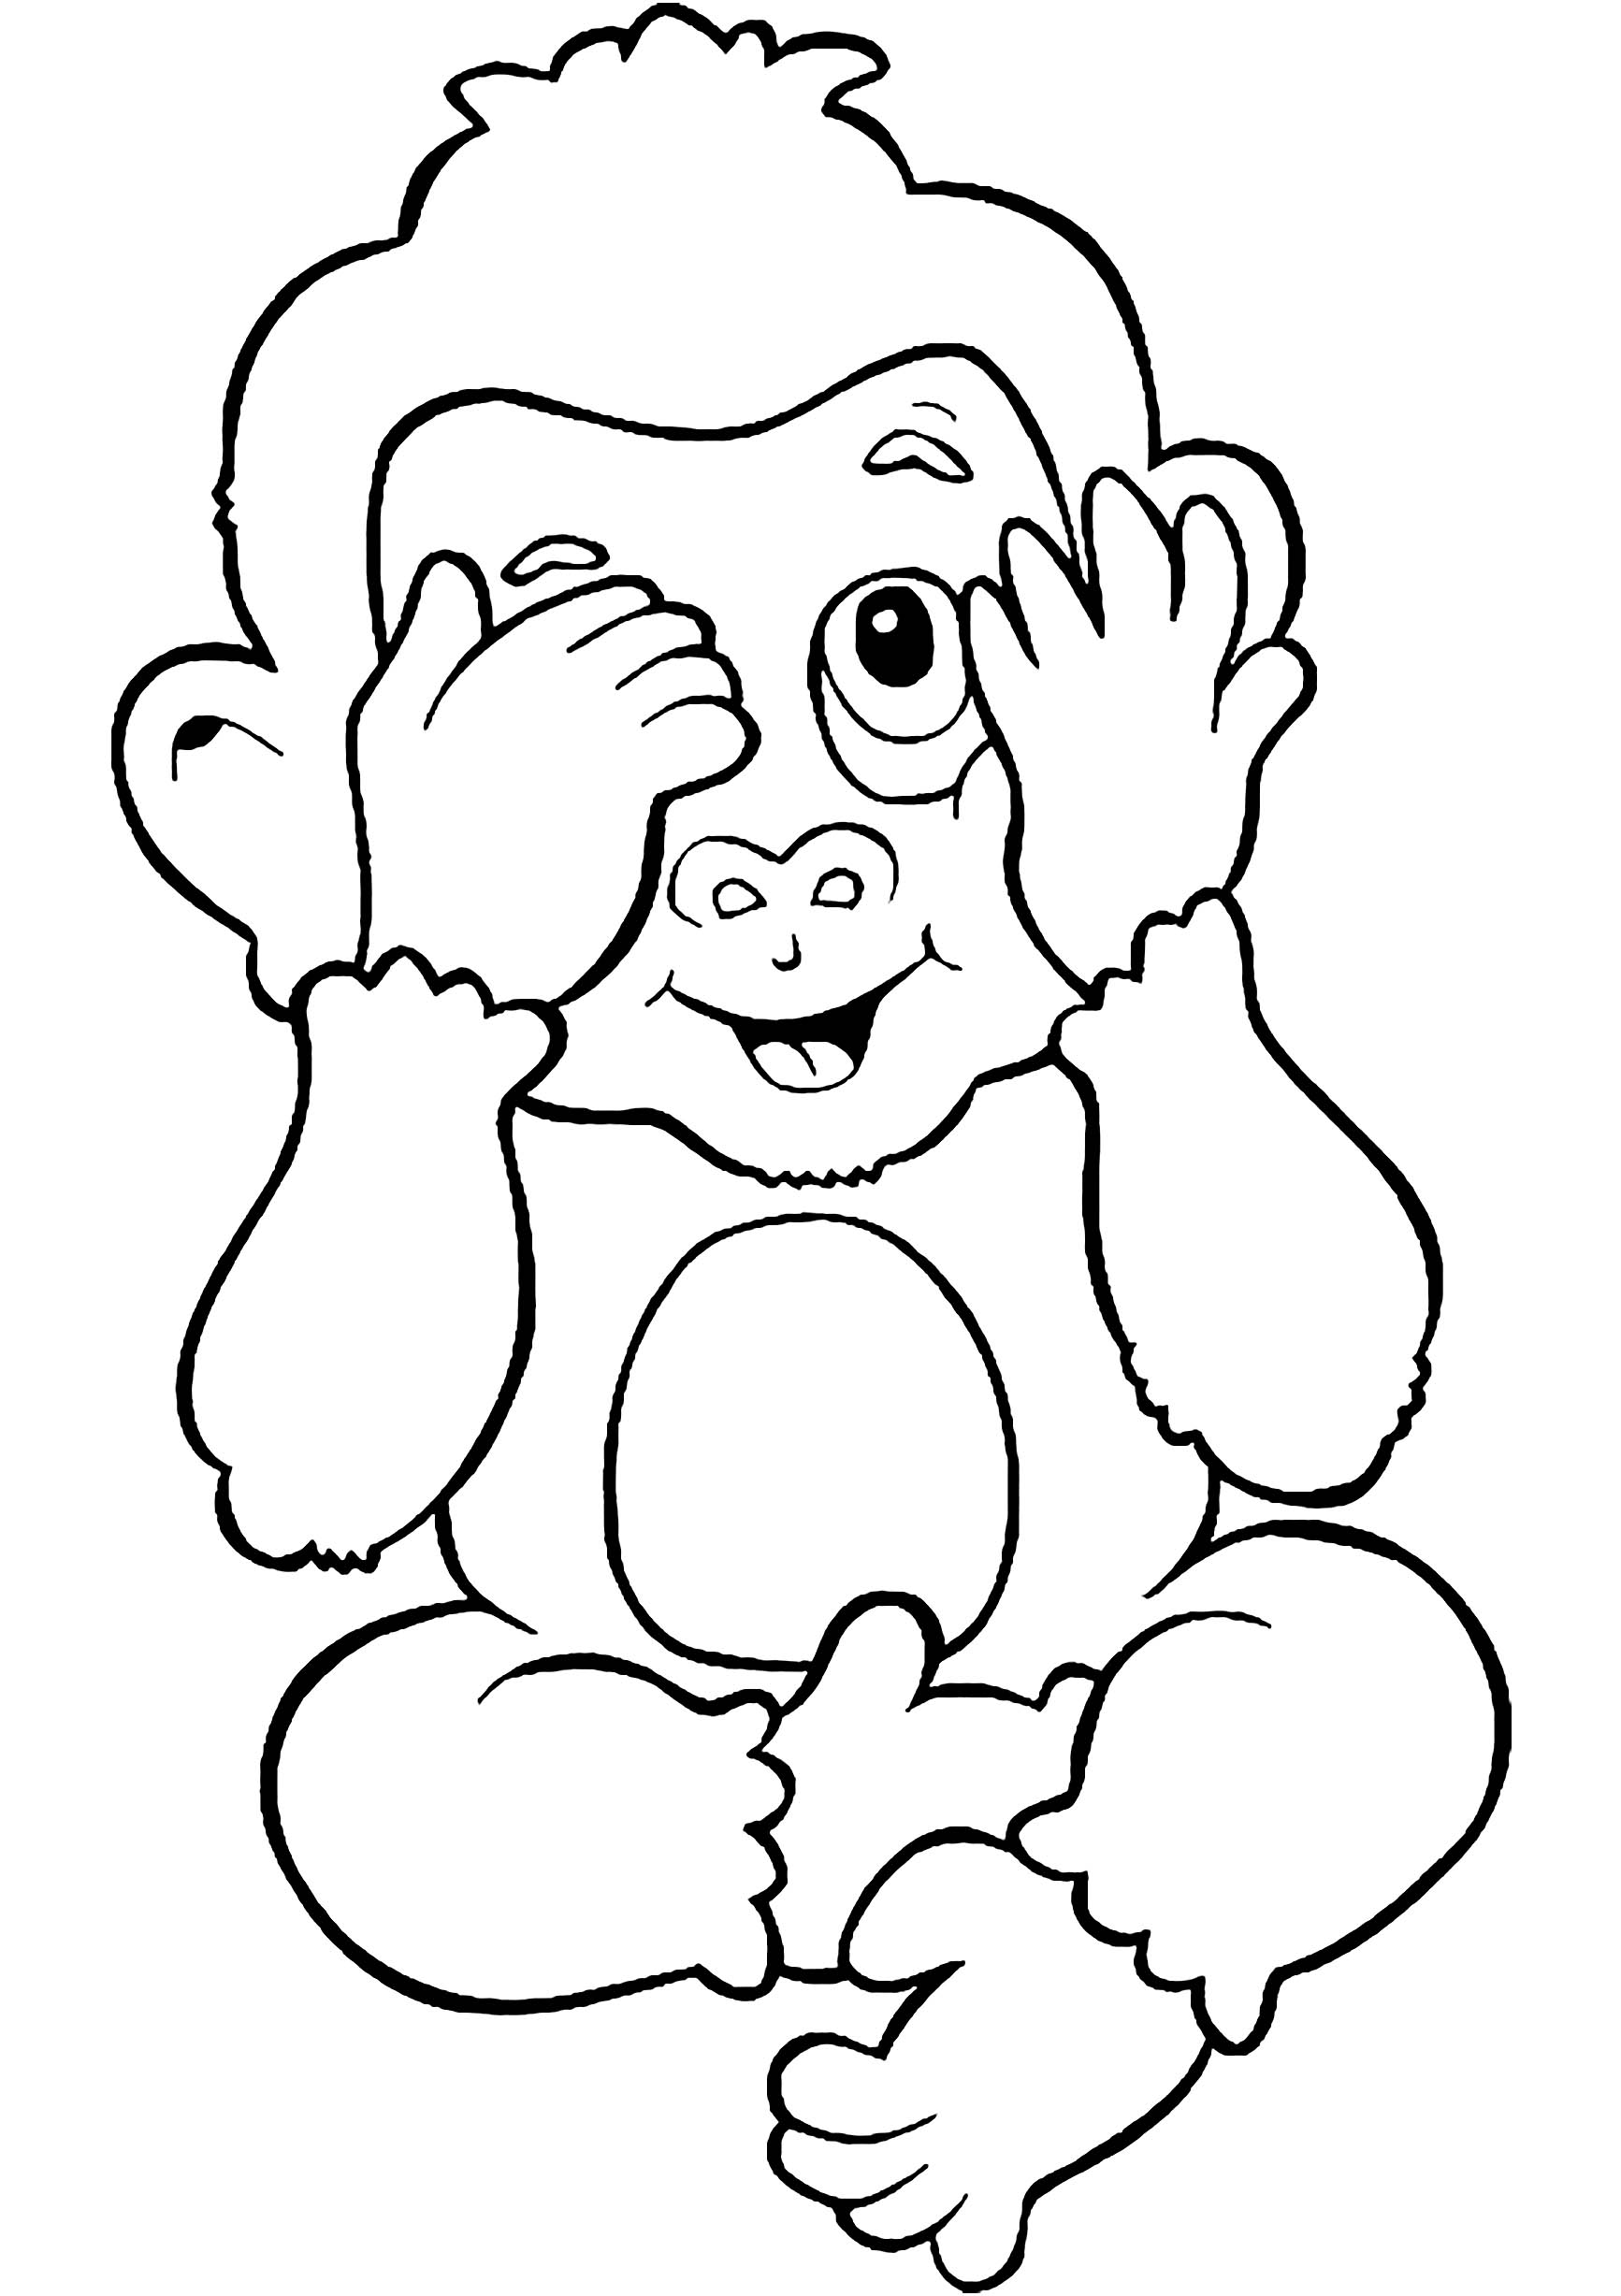 monkey pictures for coloring monkeys to download monkeys kids coloring pages monkey coloring for pictures